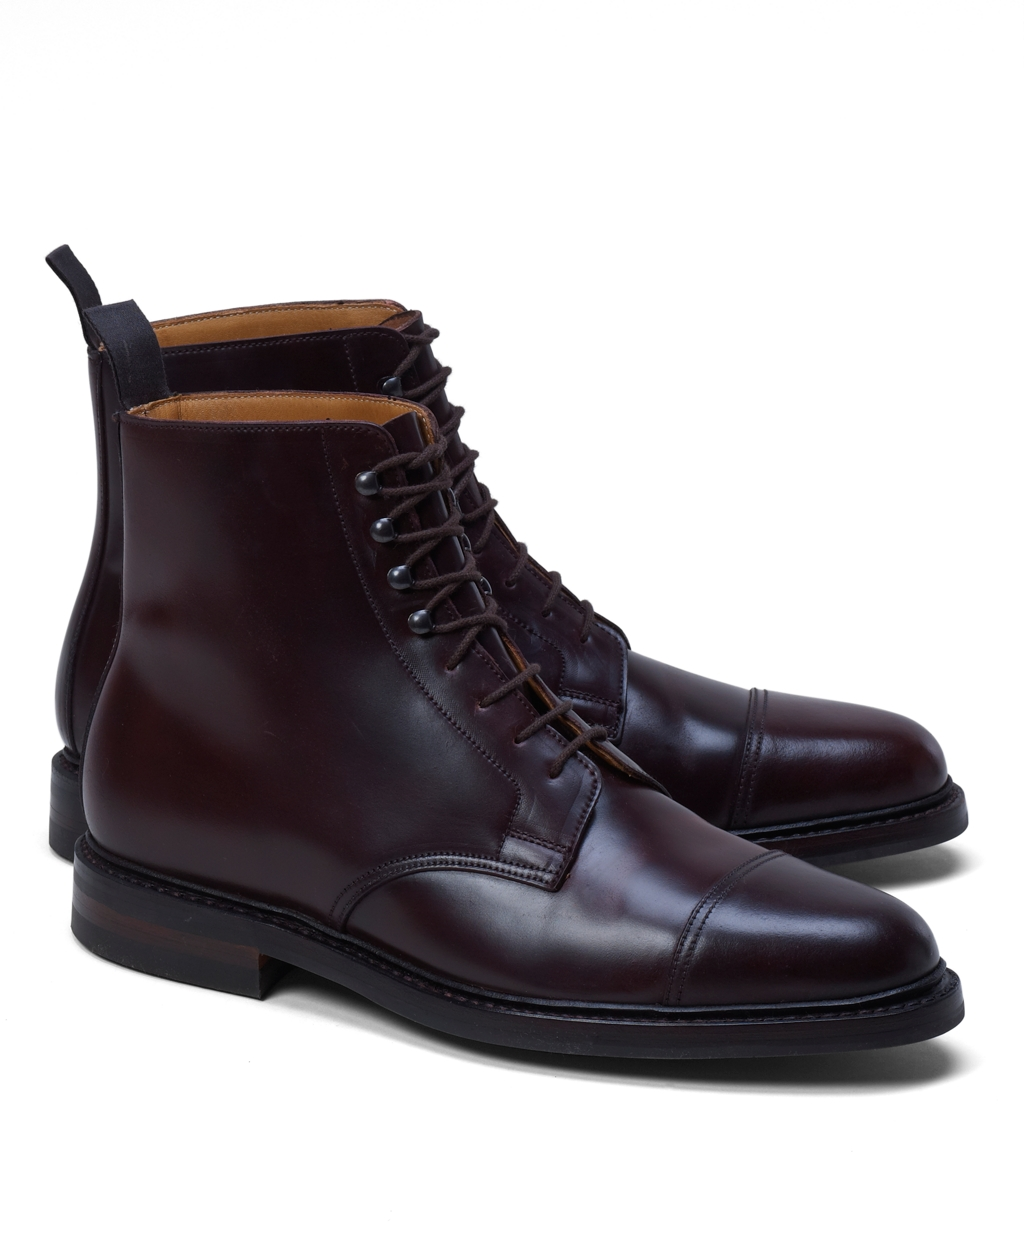 Brooks Brothers Men's Peal & Co. Cordovan Boots